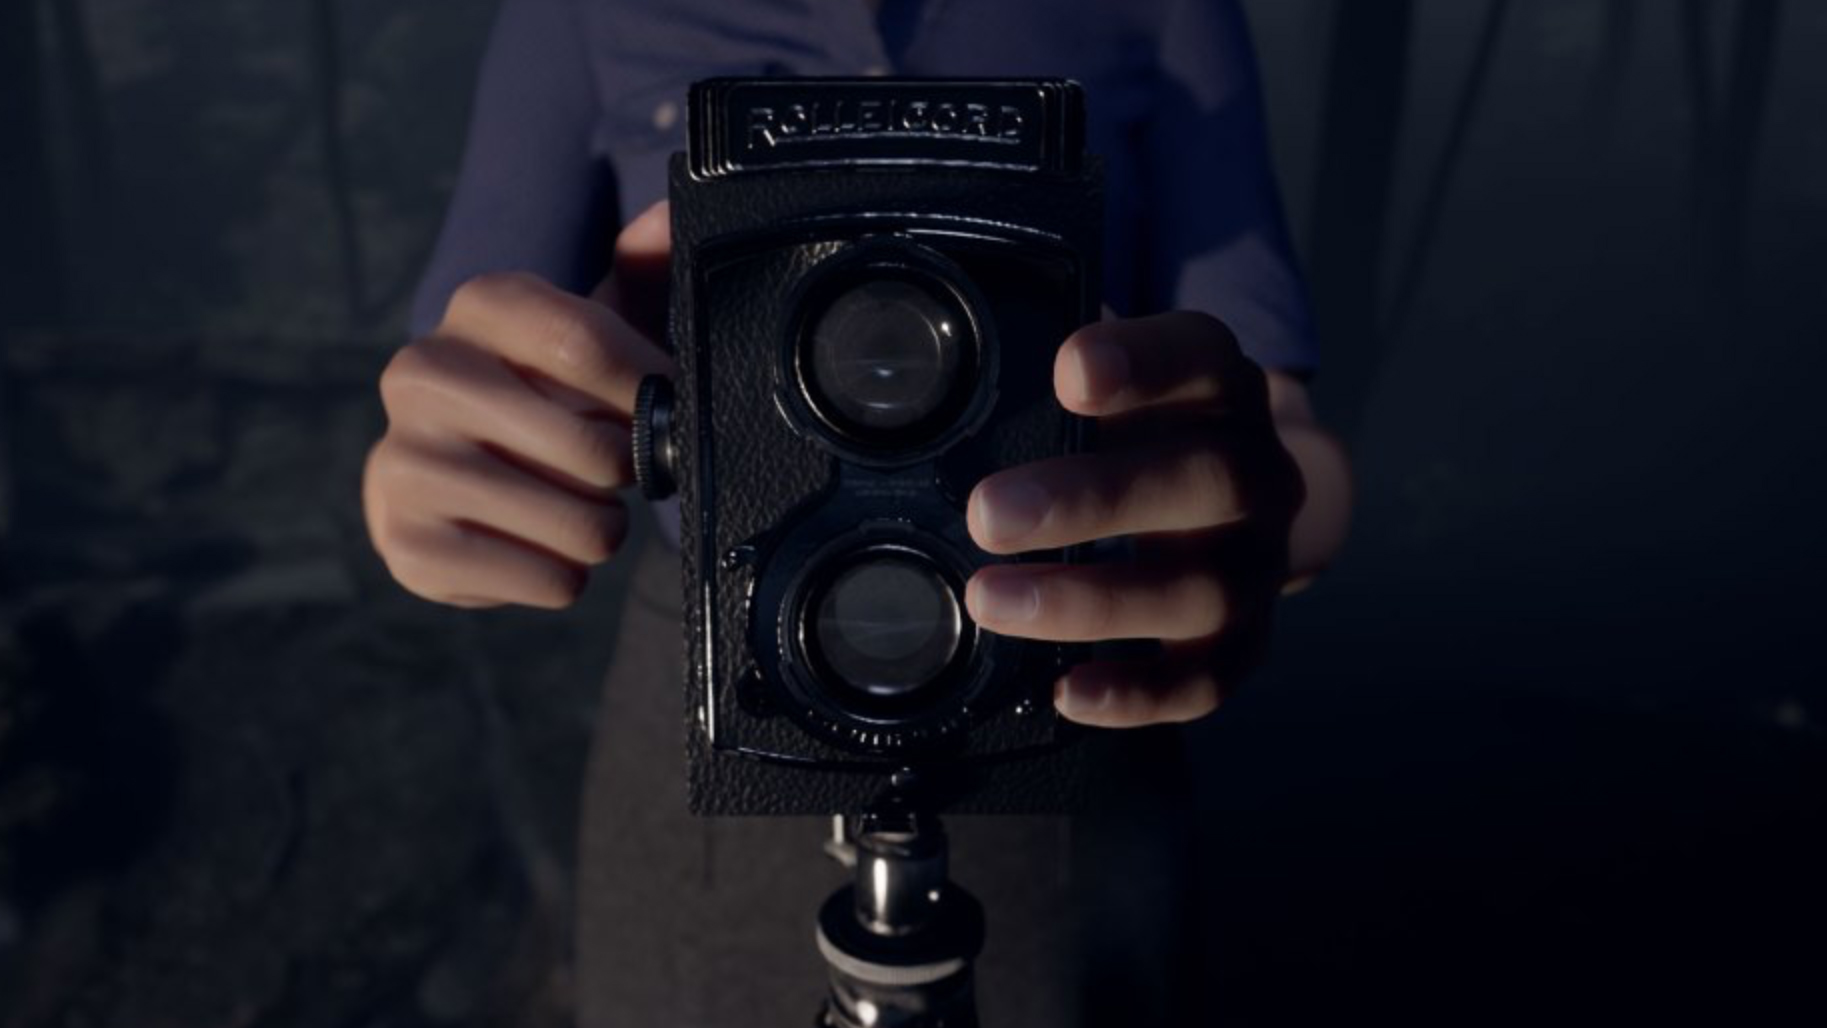 Two hands holding a camera in the game Martha is Dead